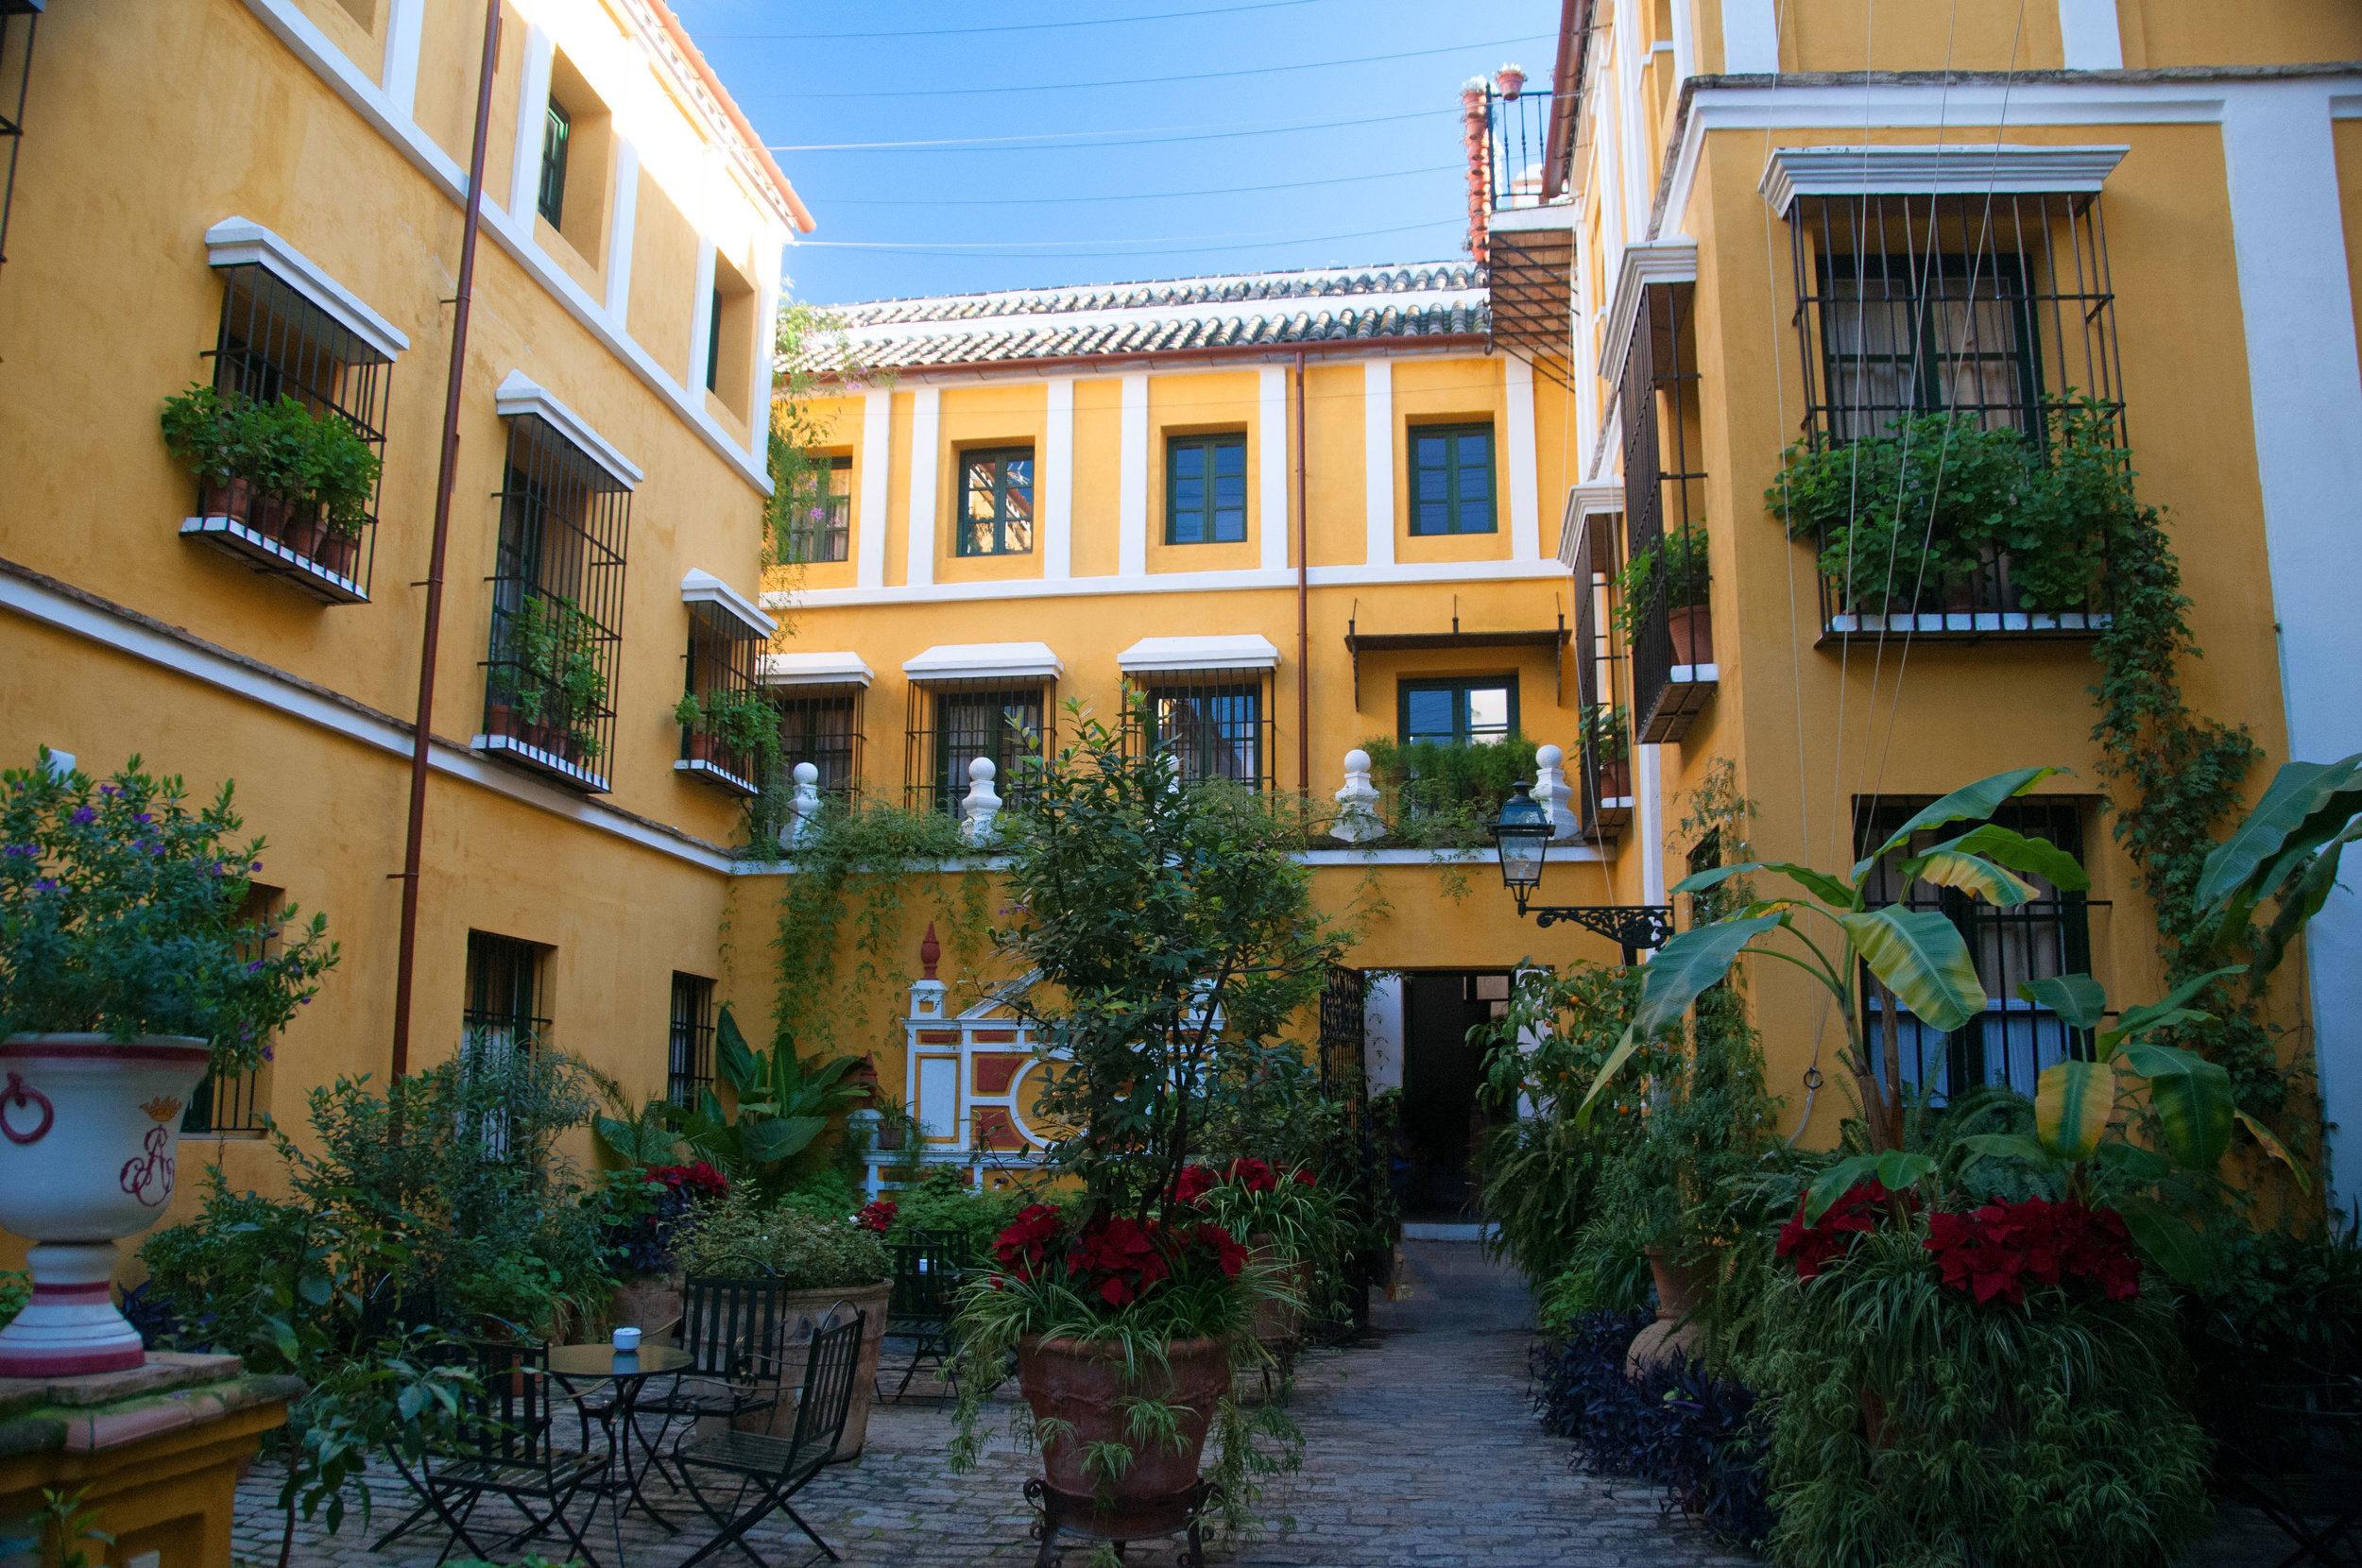 Main courtyard at Las Casas de la Juderia